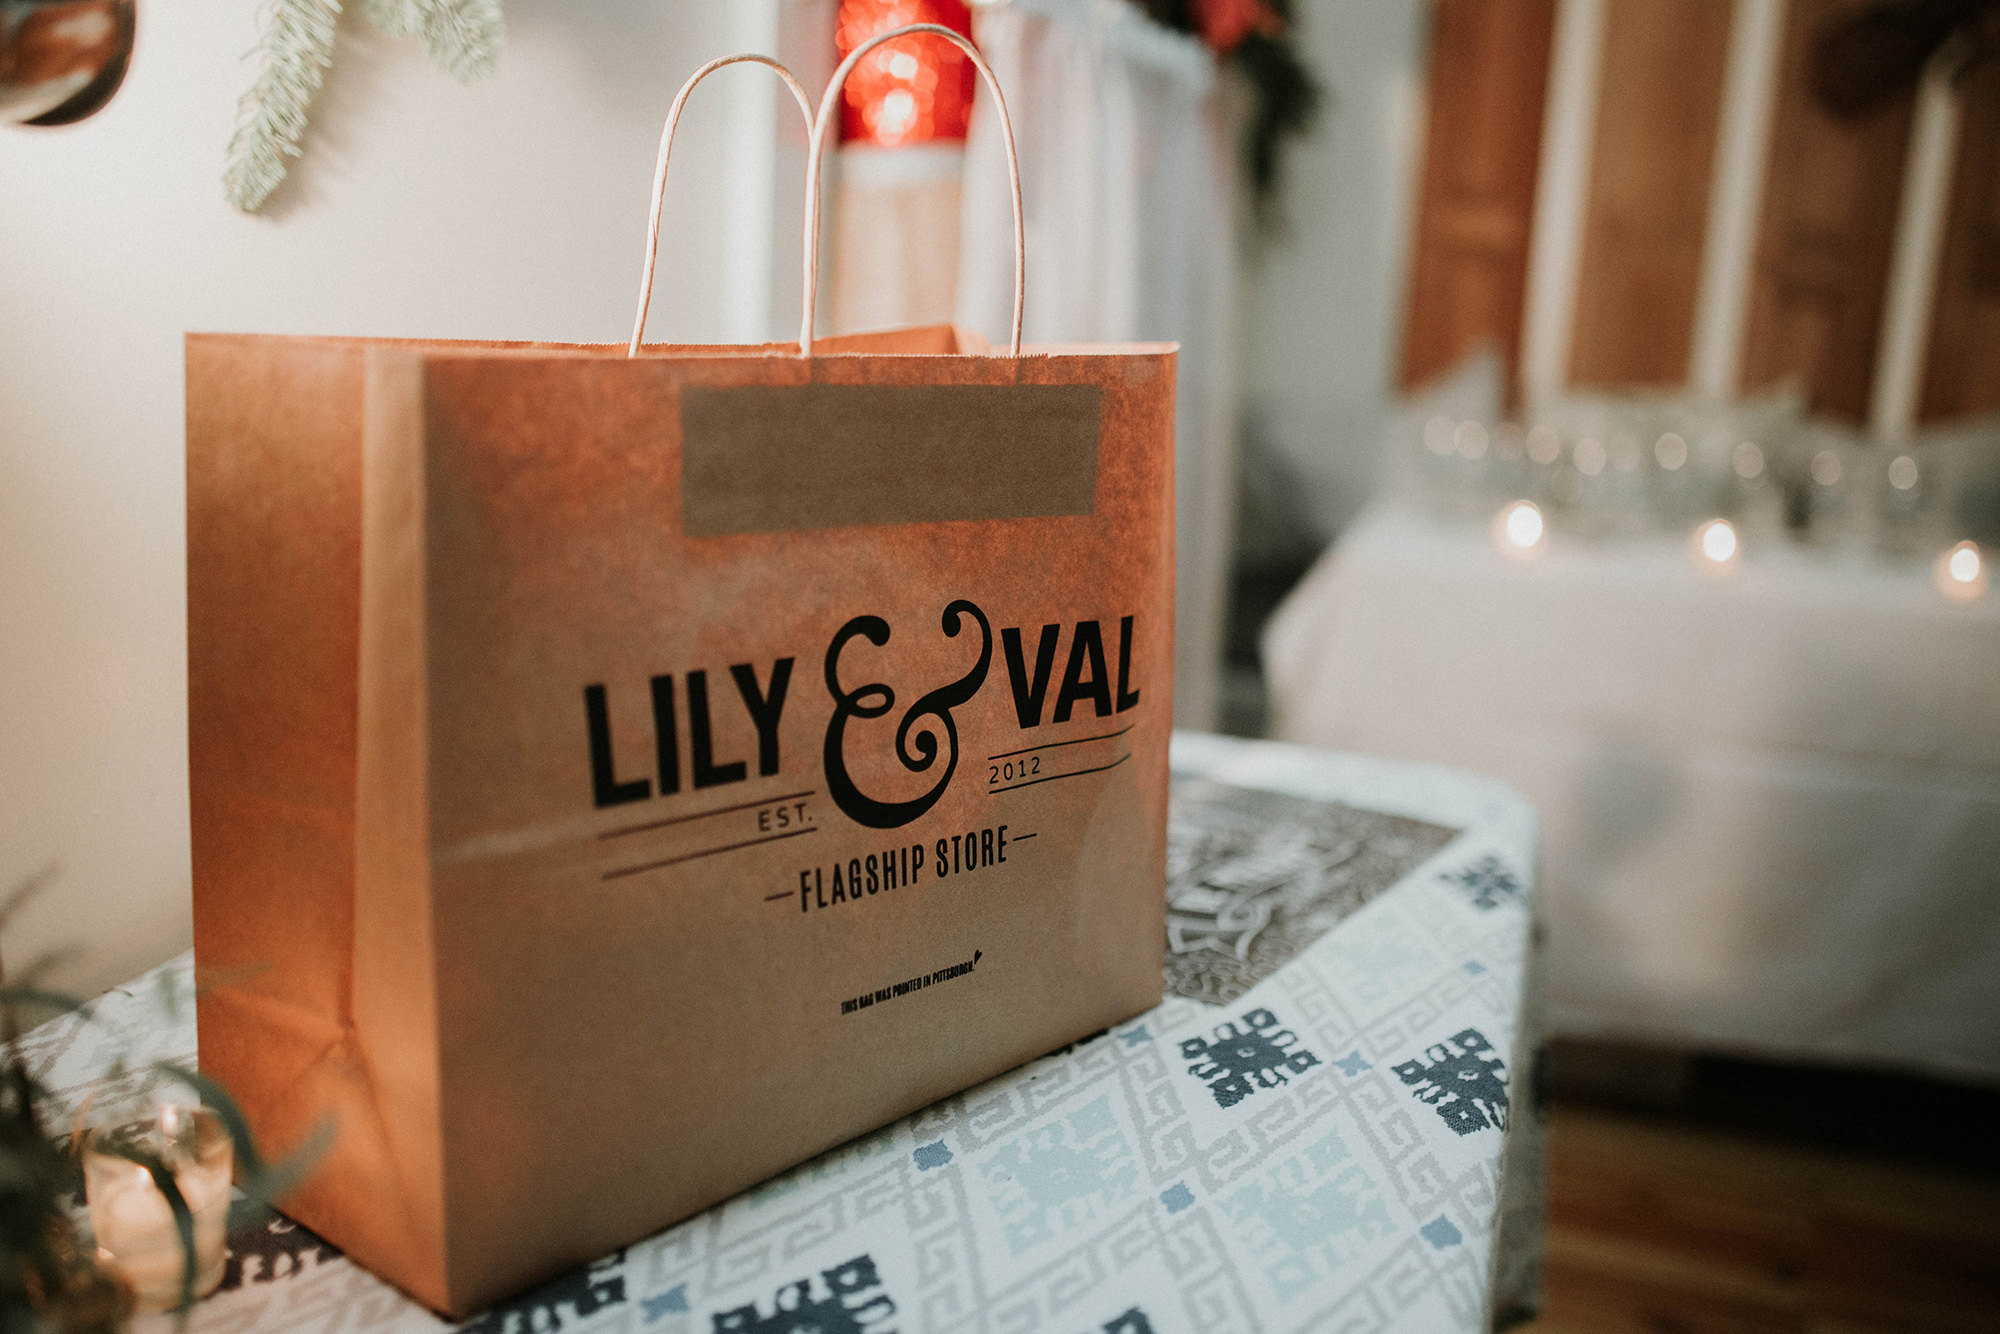 Prizes included goodies from the Lily & Val Flagship Store